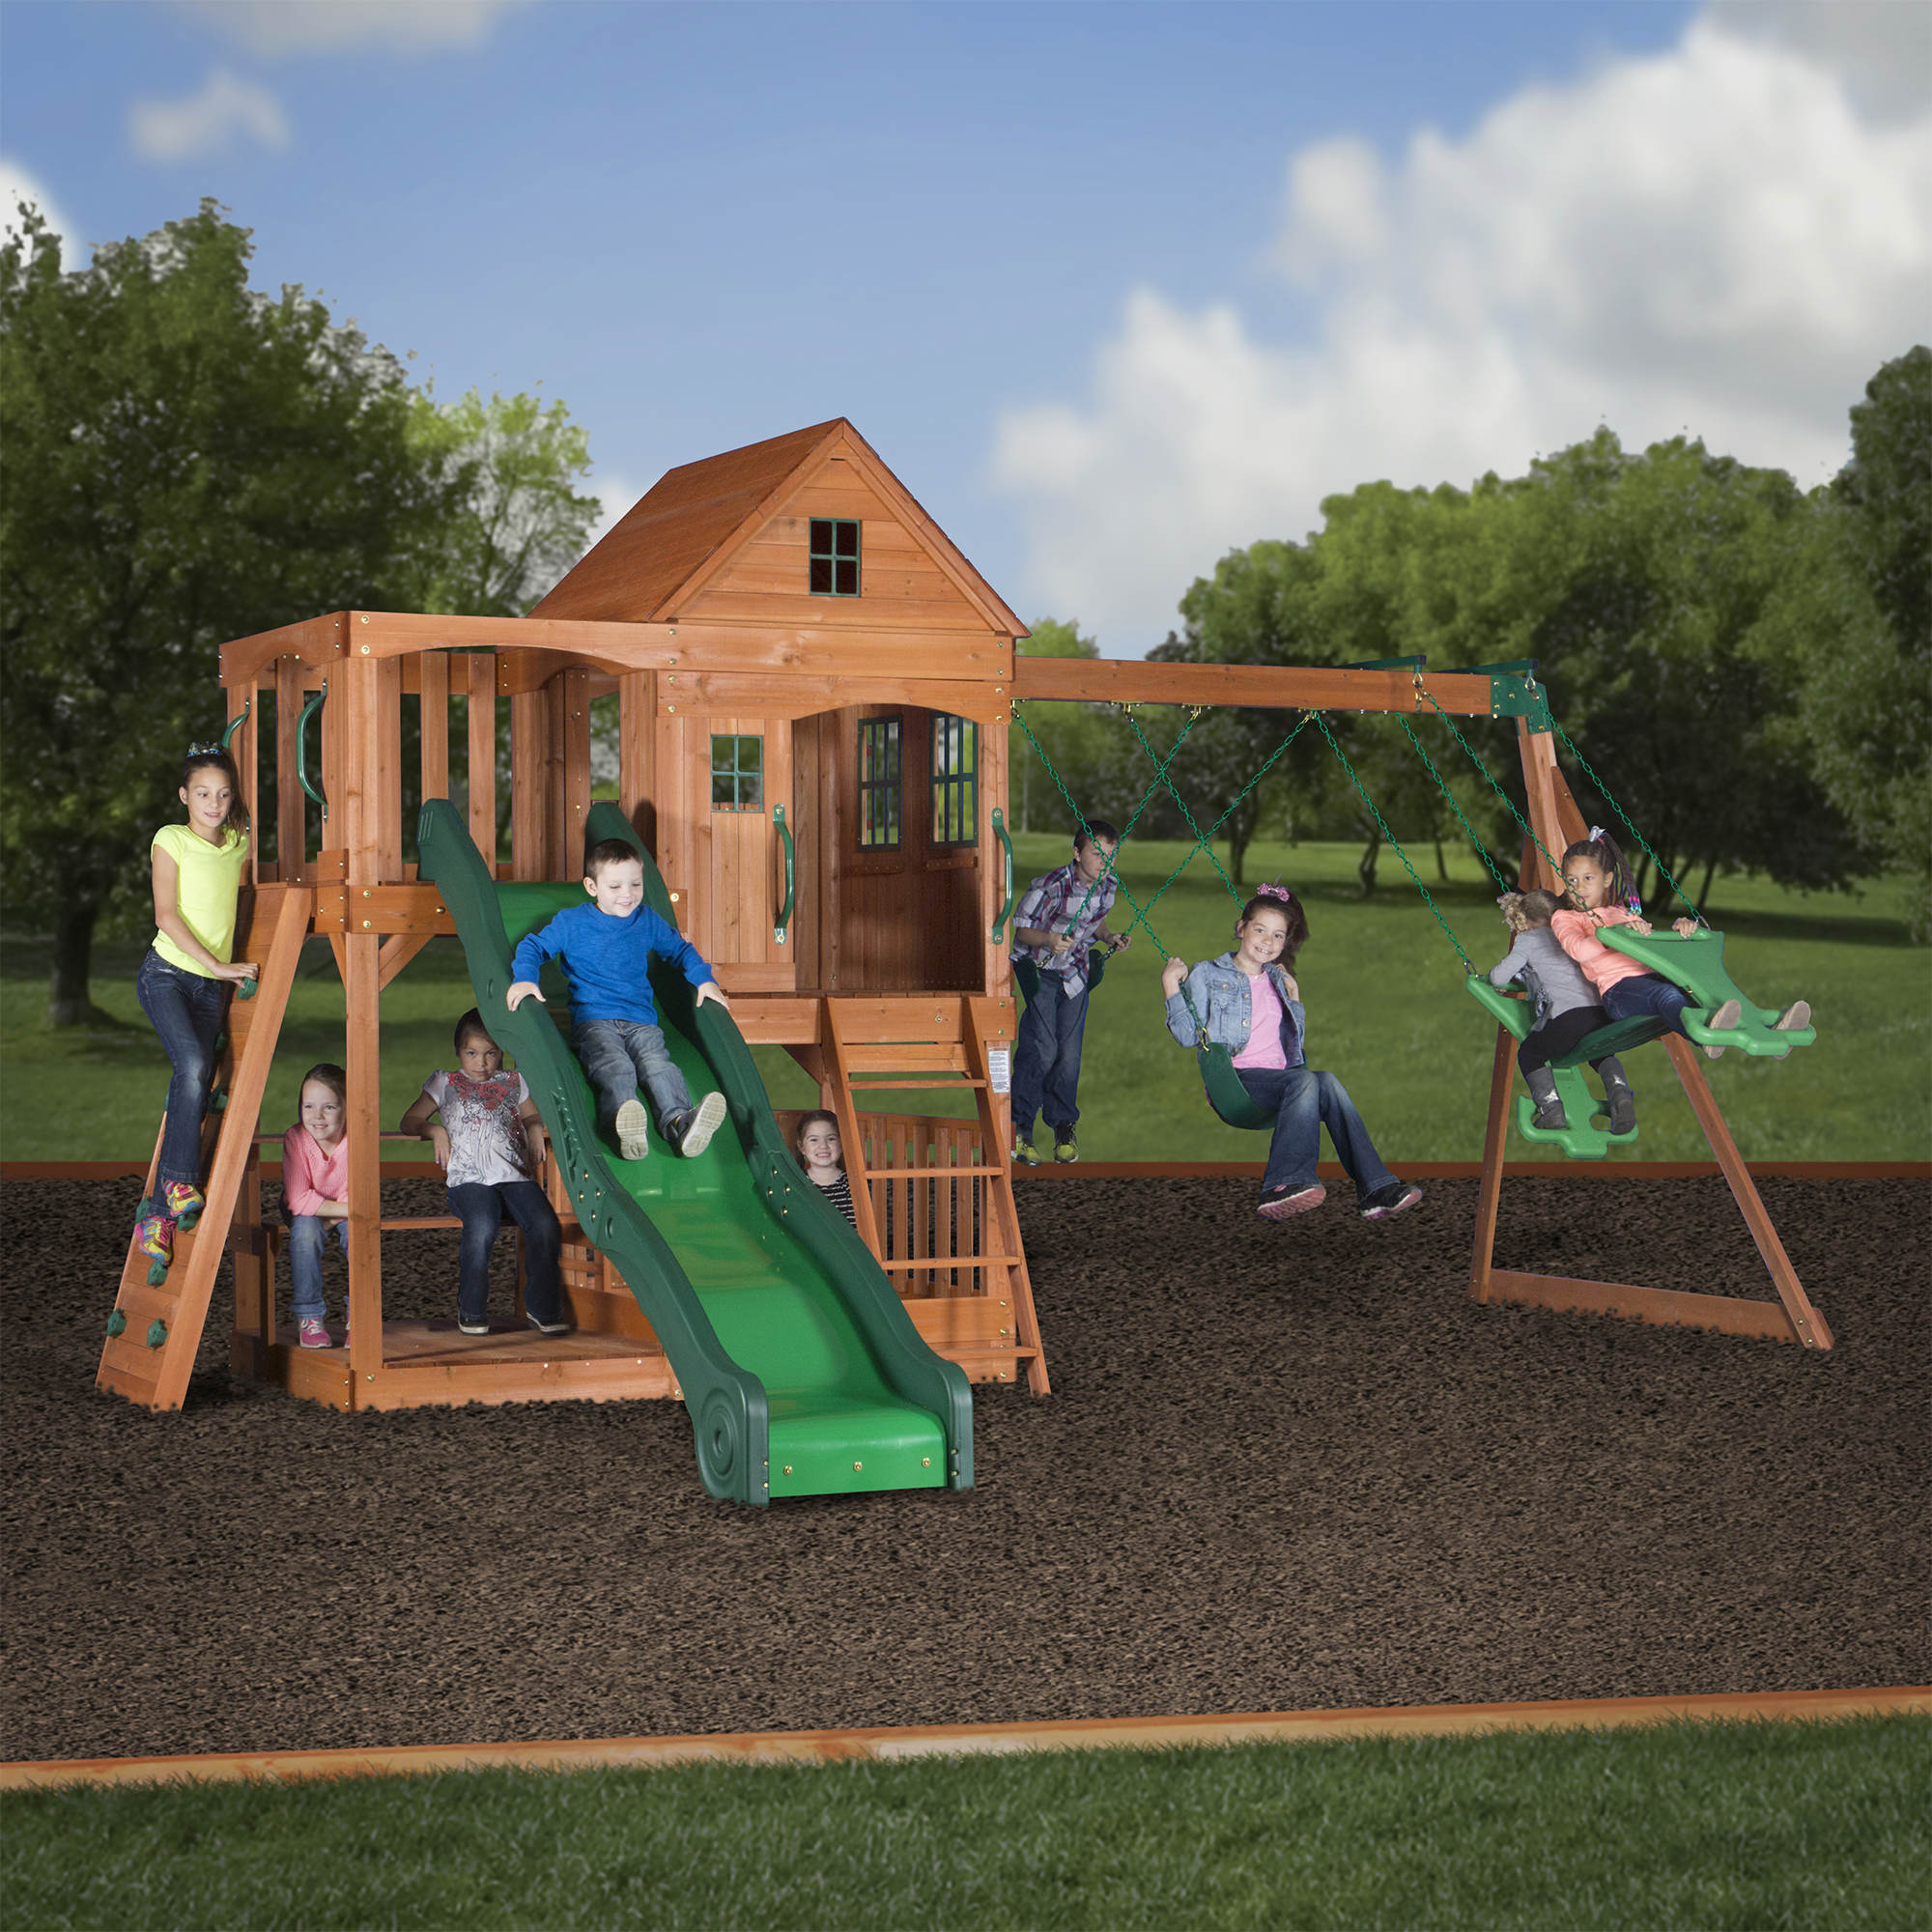 and somerset interesting sets for wood plus design backyard small with epanse discovery gravel garden playsets pea grass green outdoor swing set playground